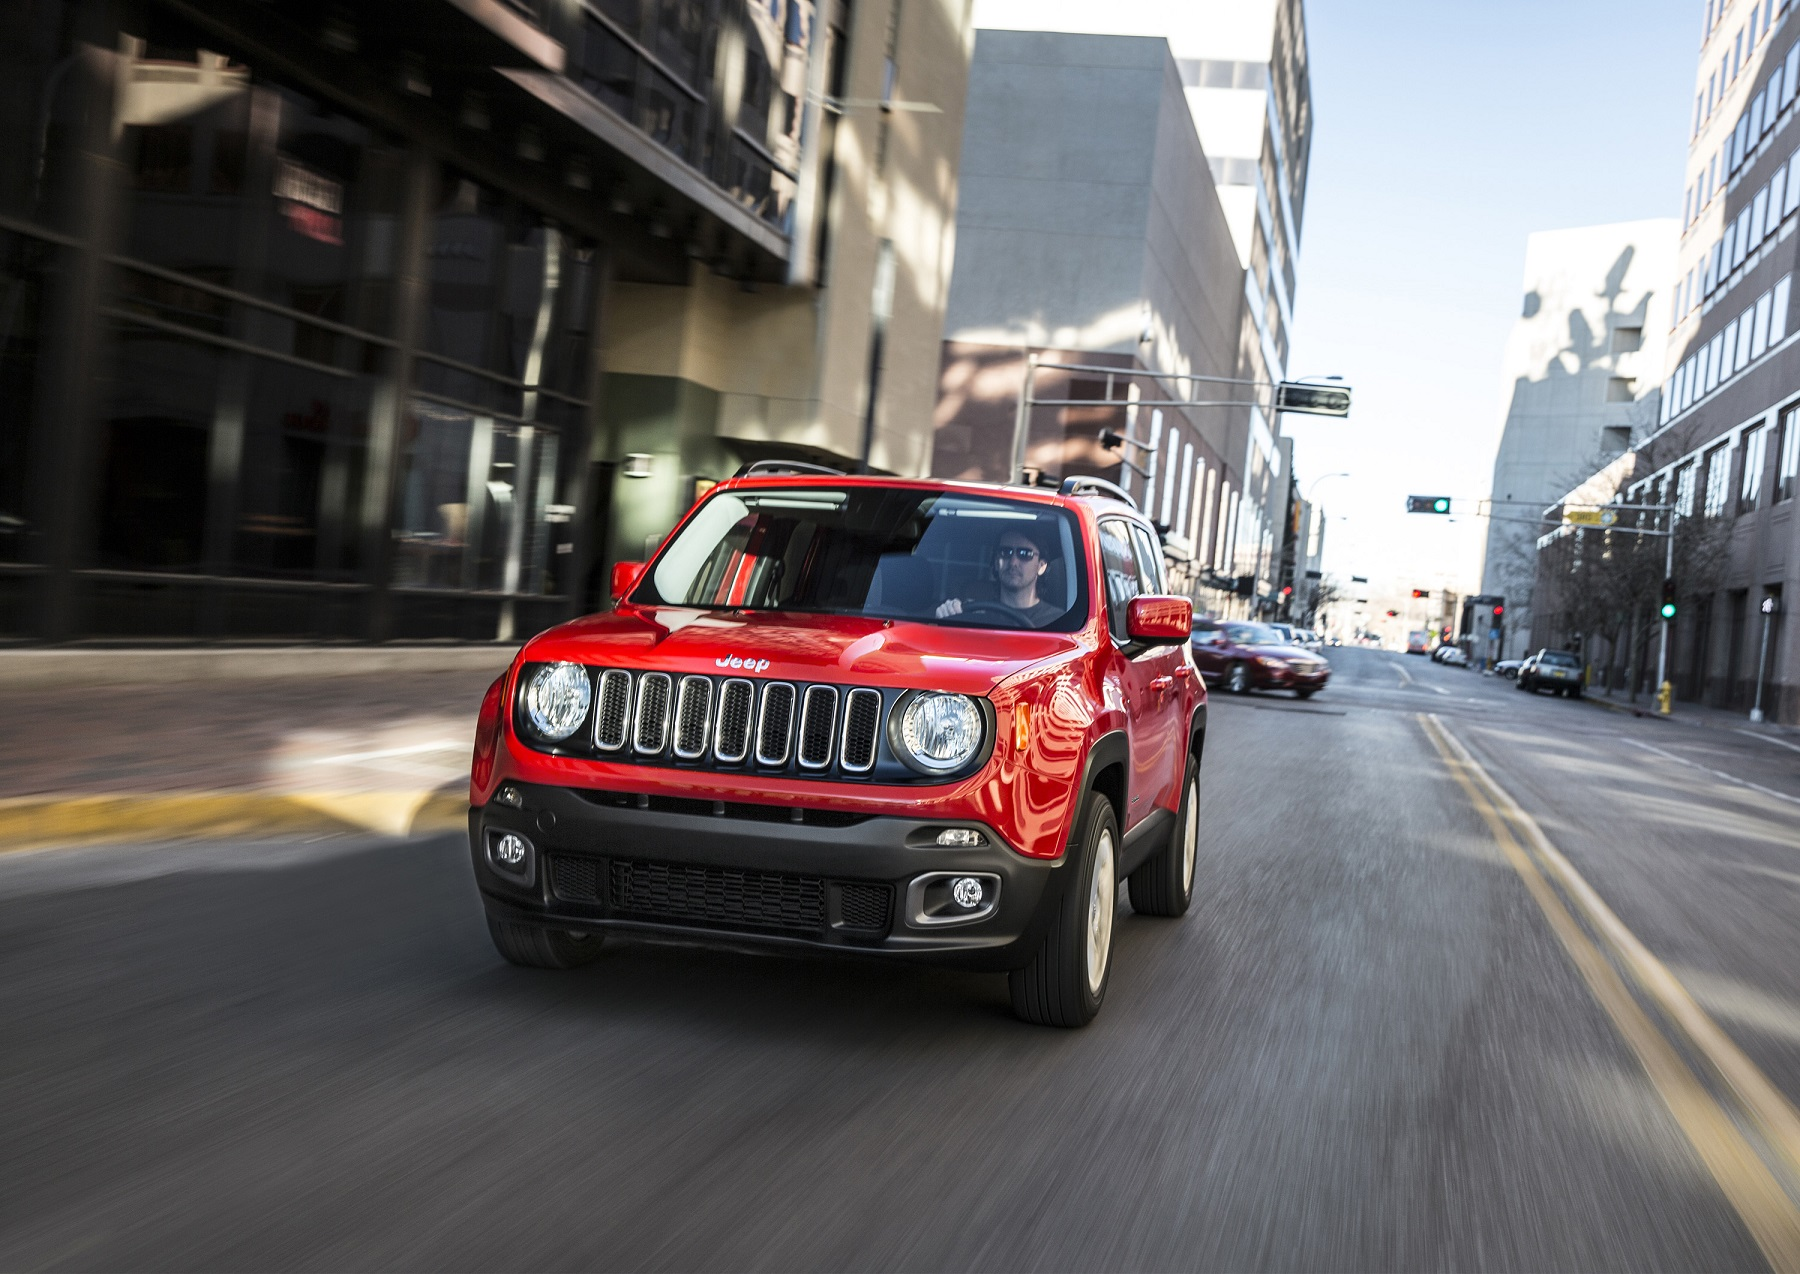 Manufacturer photo: The all-new 2015 Renegade offers the open-air freedom and iconic styling Jeep is known for in an all-new efficient, trail and urban-friendly size -- designed to take the growing global small SUV segment head-on with its beefy proportions and purposeful design elements